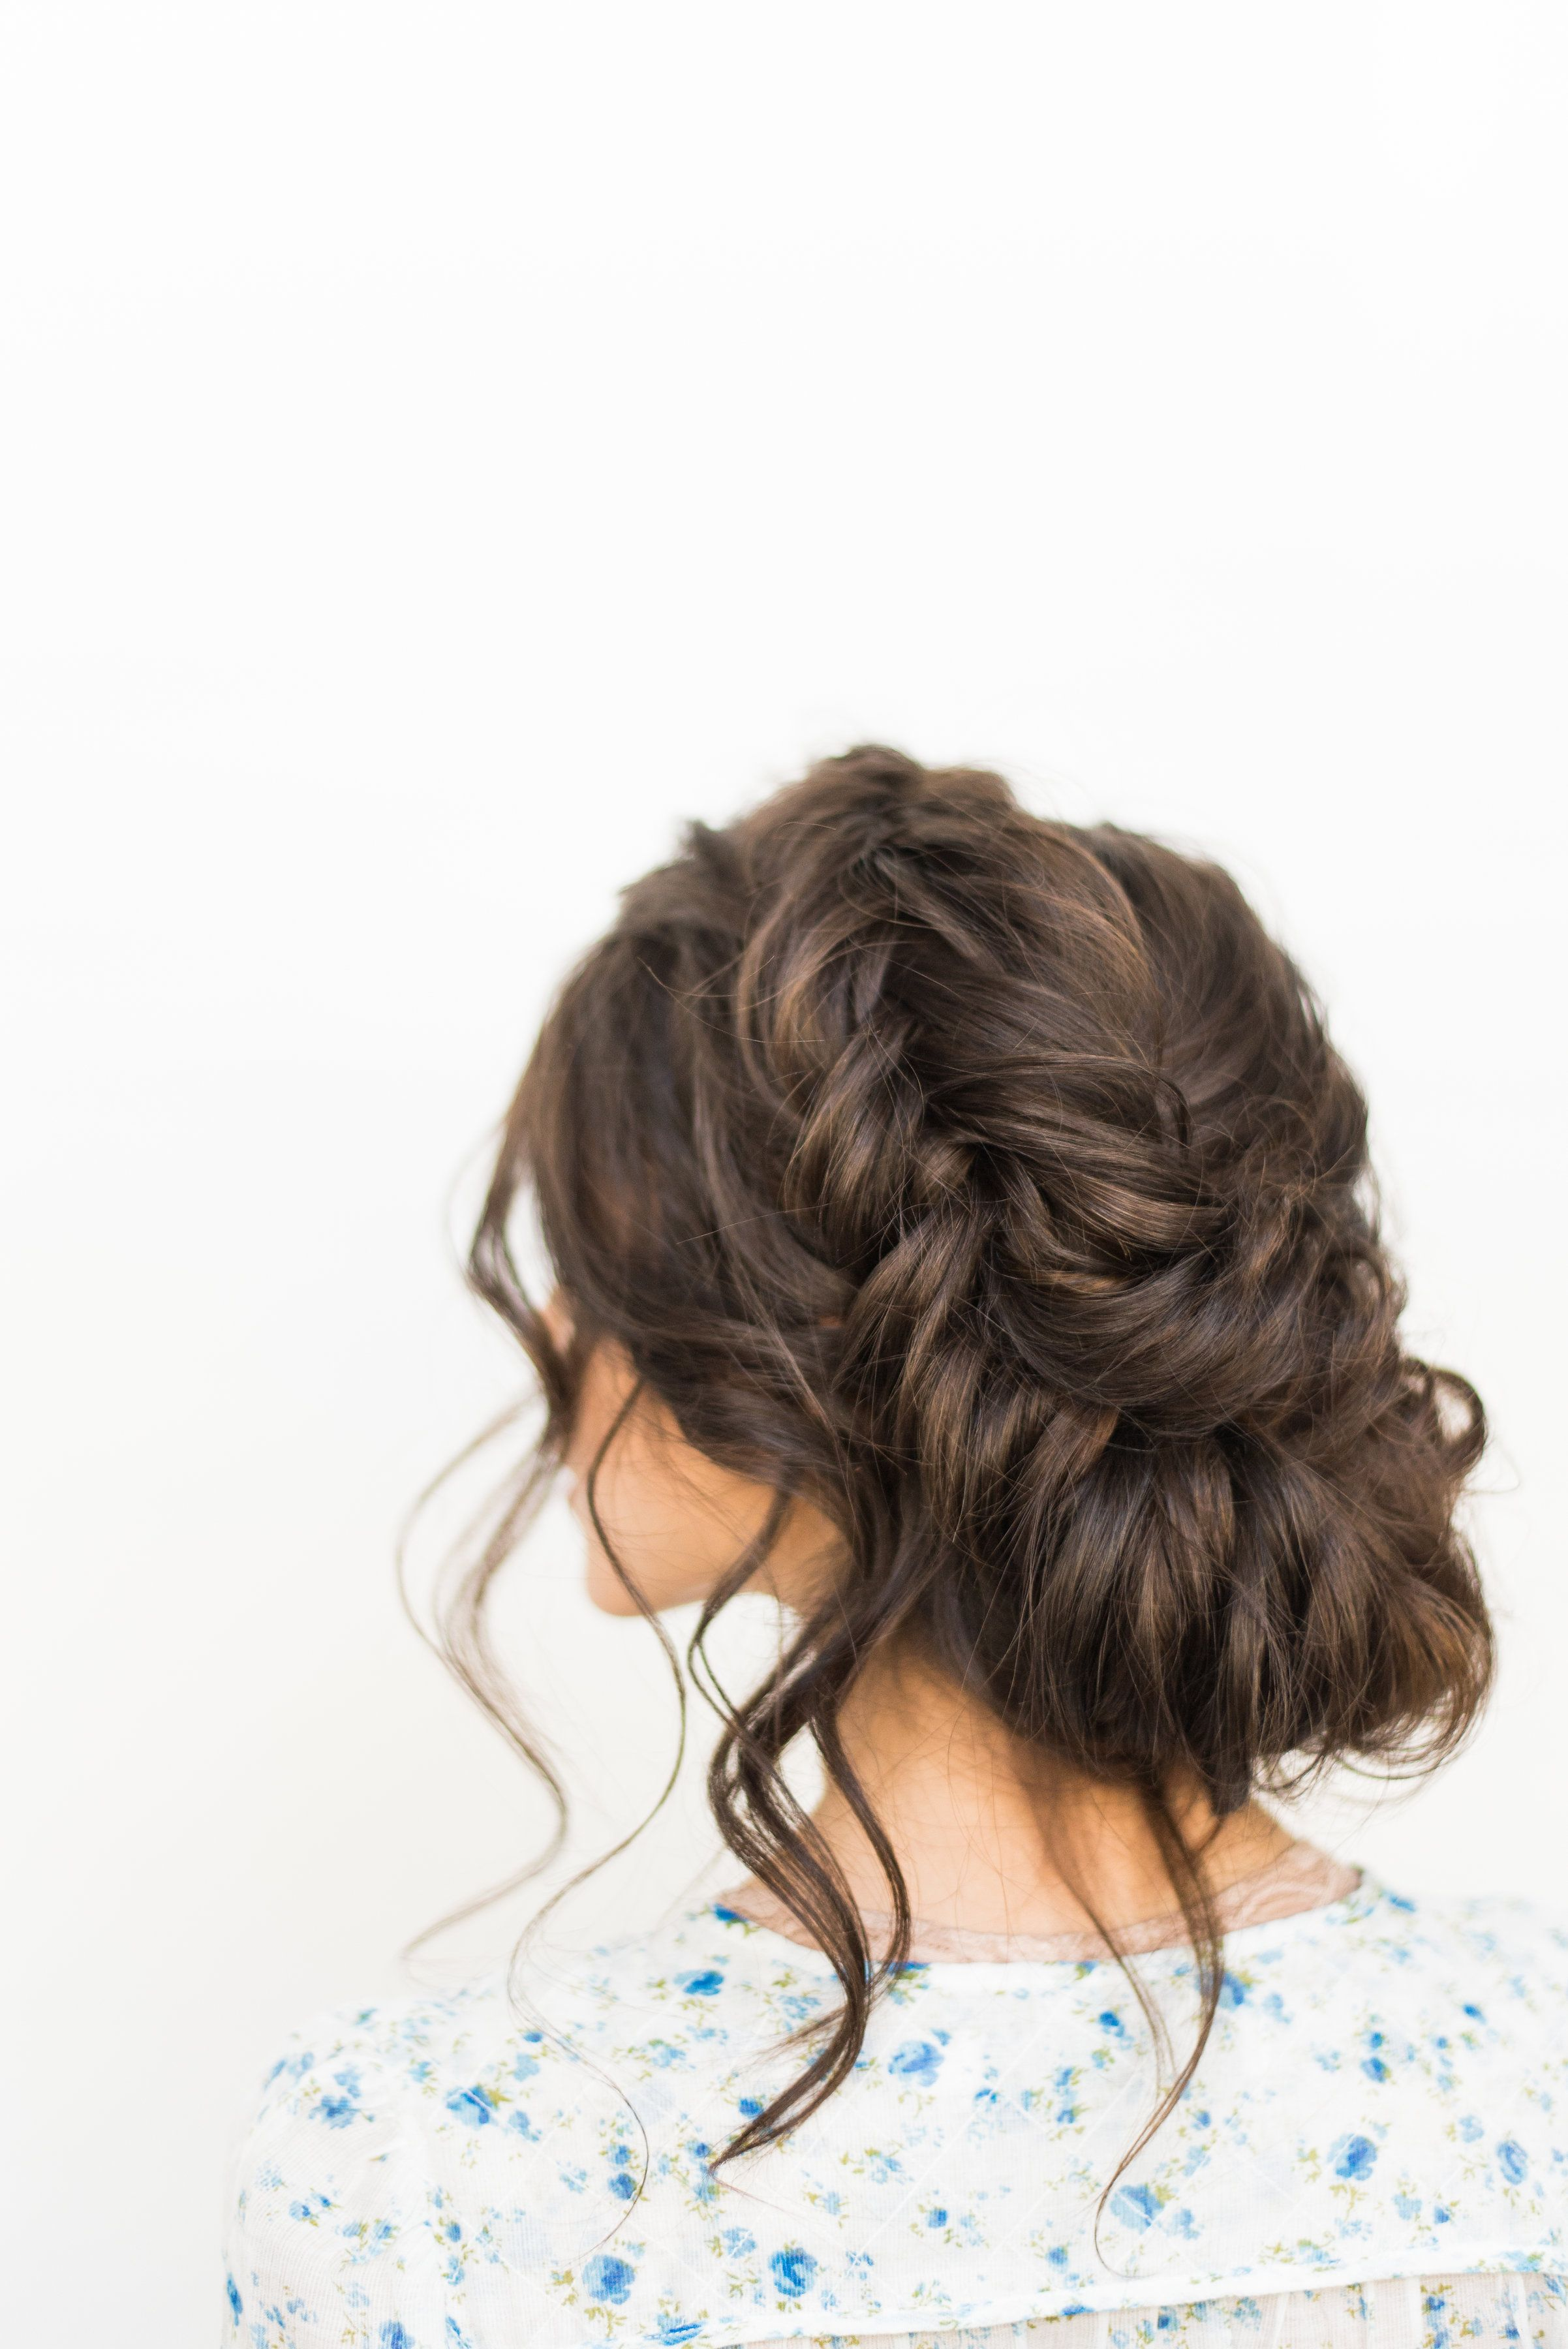 braided updo | Braids on Braids | Pinterest | Updo, Hair style and ...